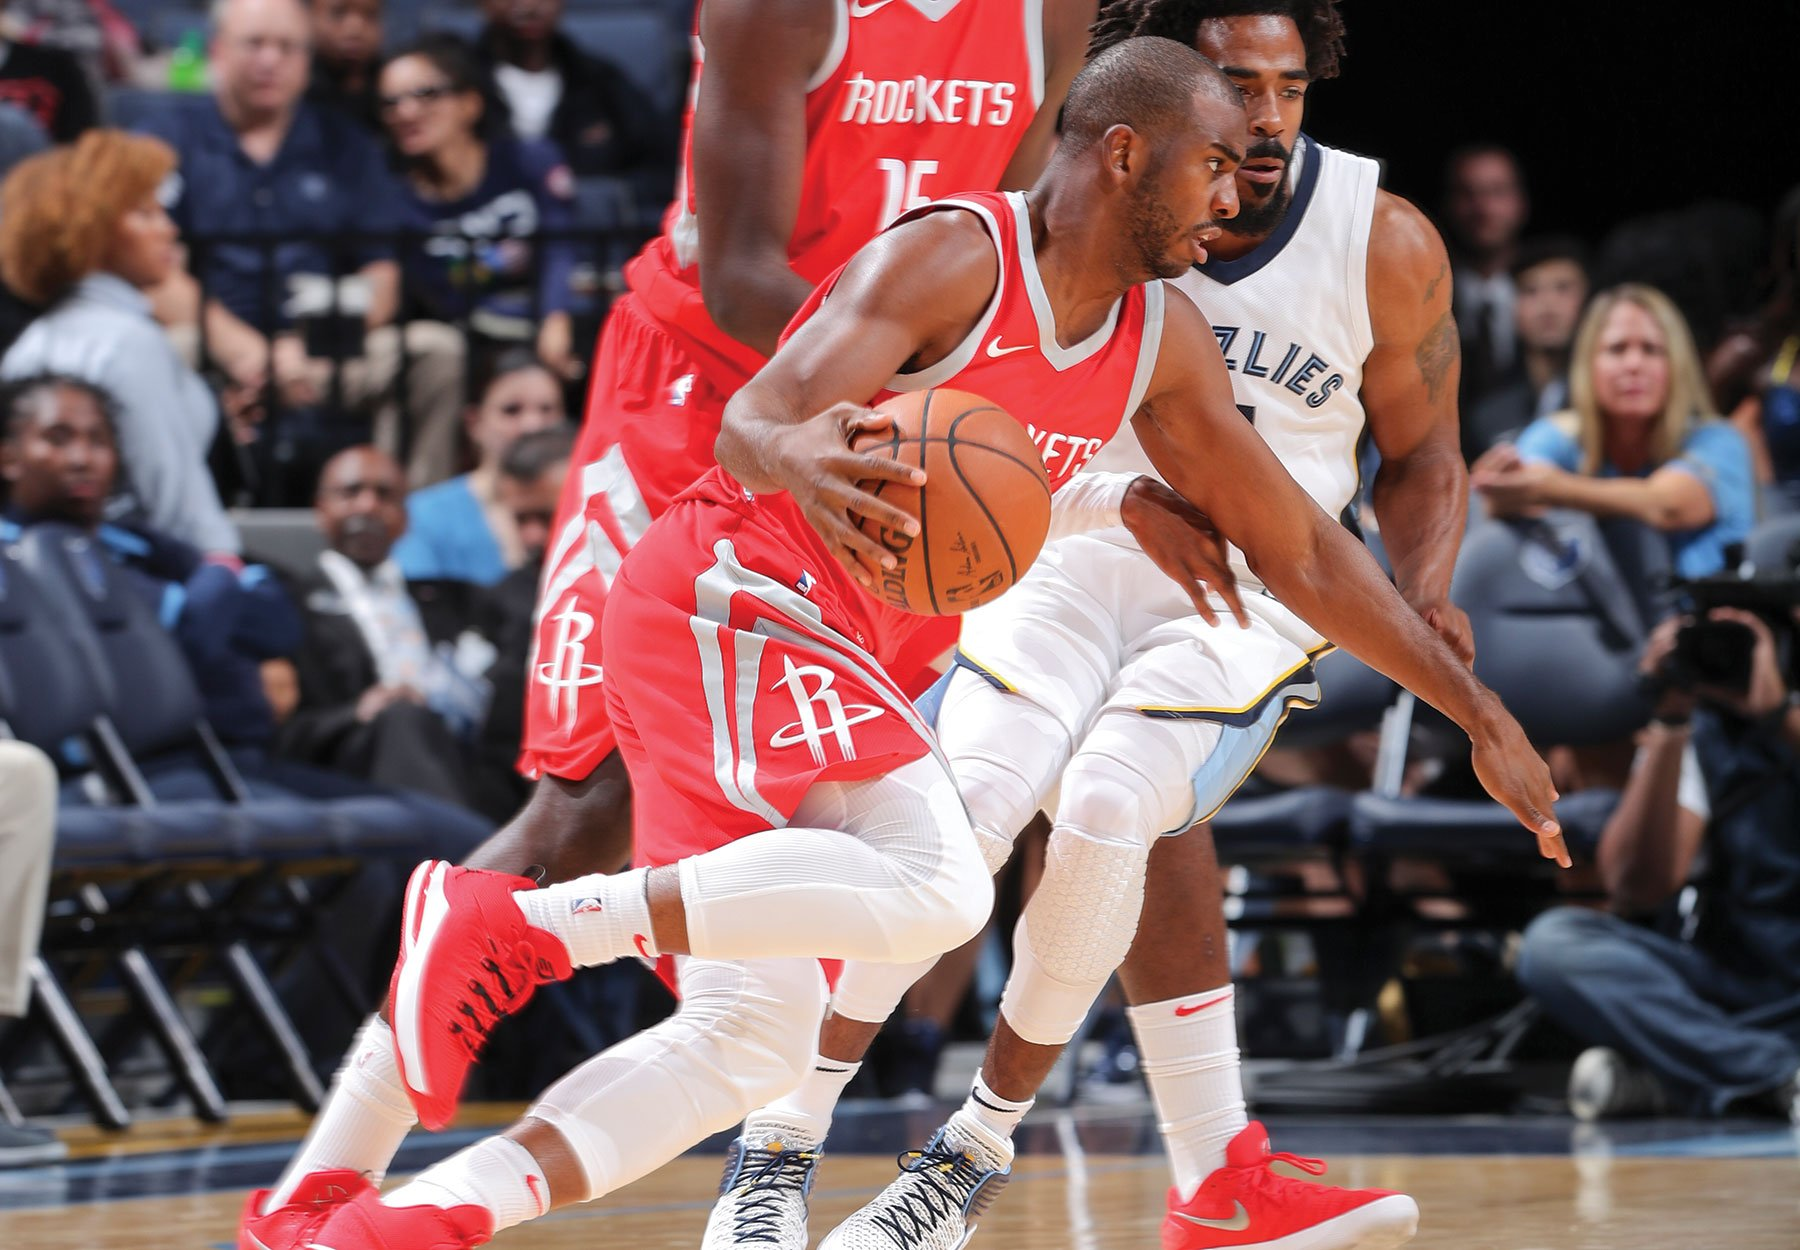 Halftime in Memphis.   Rockets 44 Grizzlies  47  @JHarden13 11pts/7ast @CapelaClint 11pts/7reb https://t.co/758diO5BMc